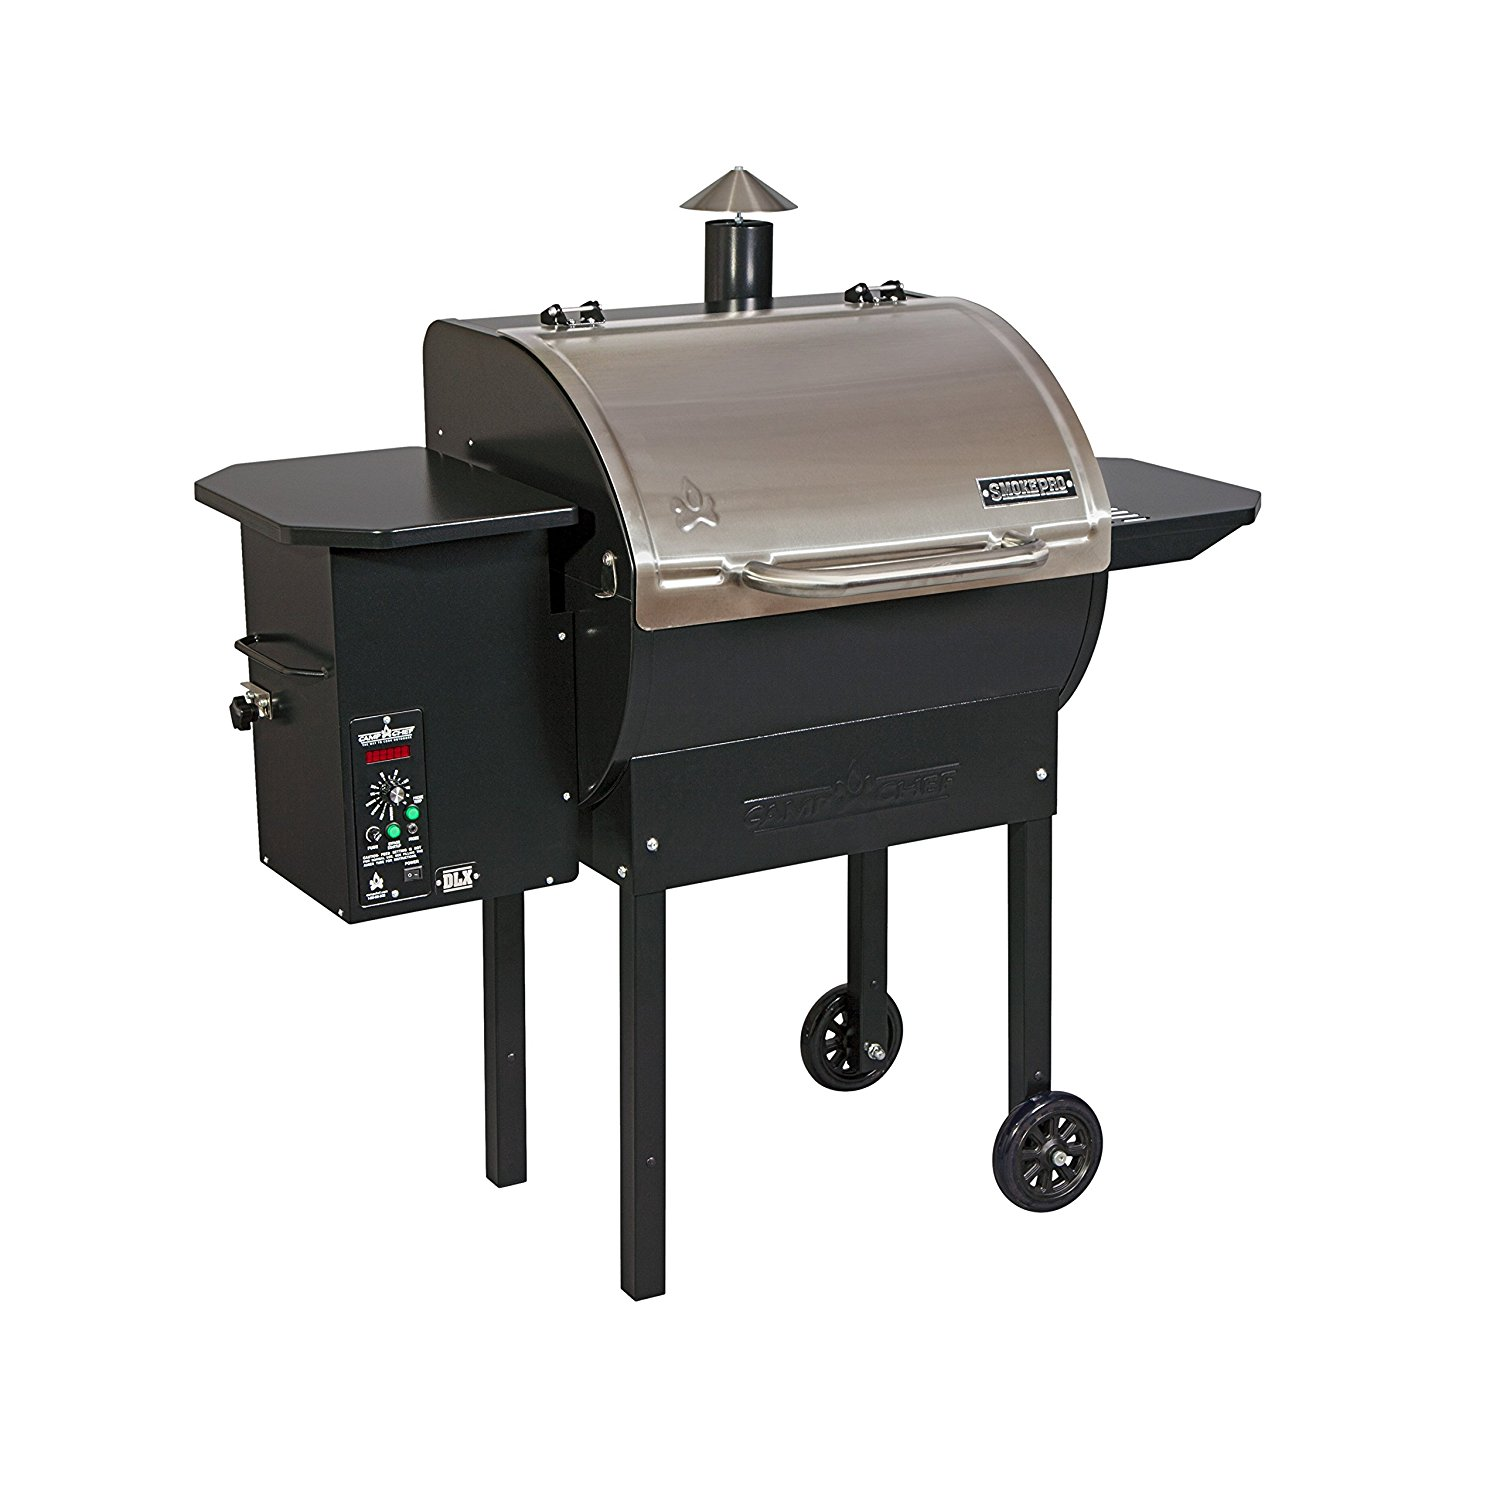 best offset smoker reviews of 2017 for home and outdoor bbq fun